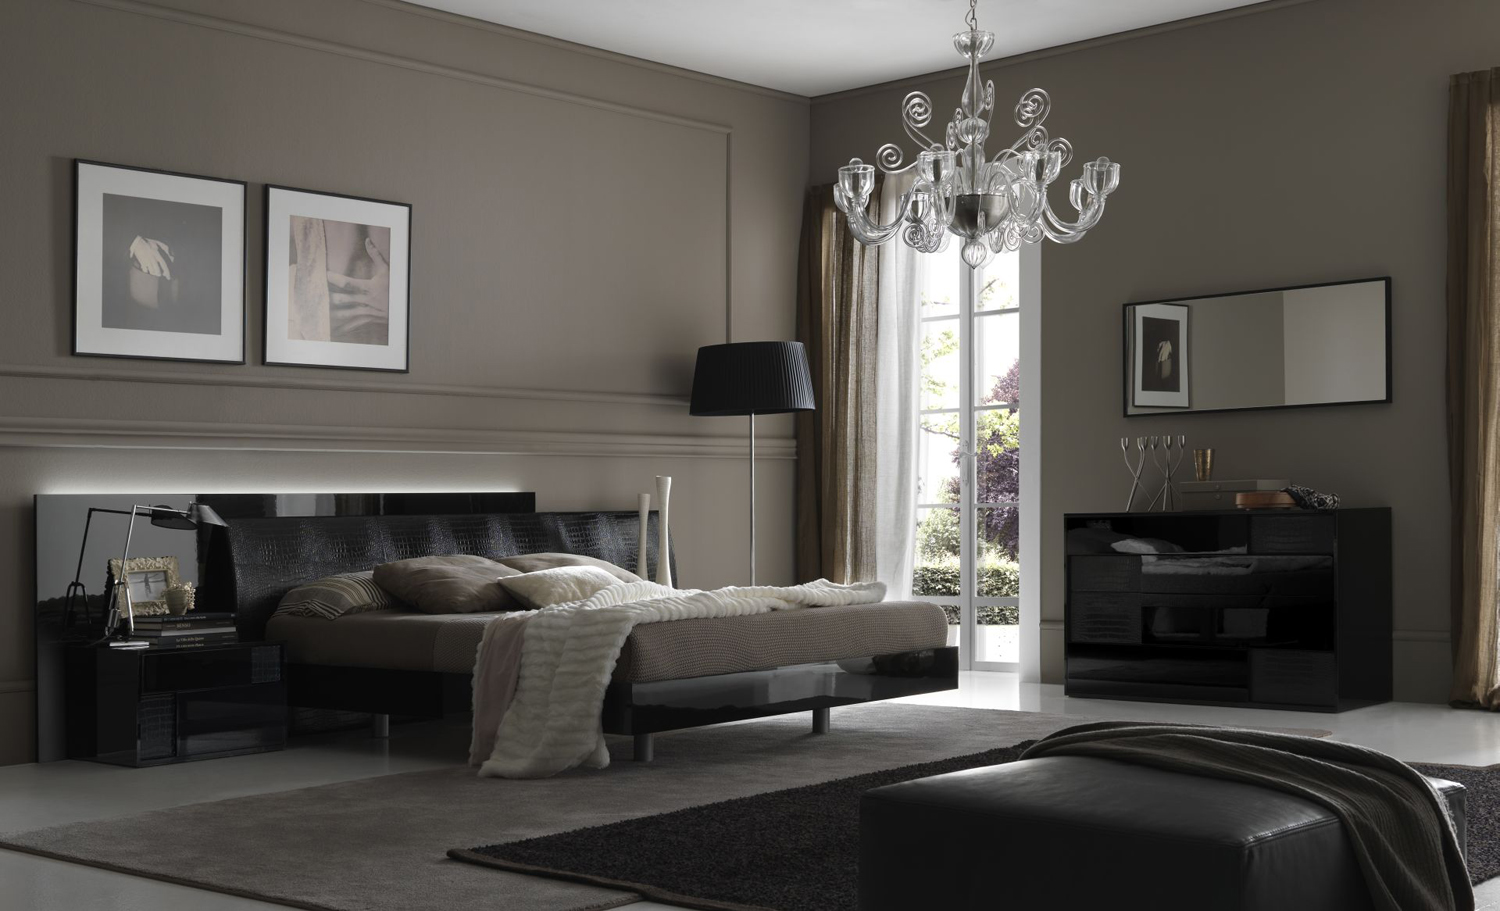 Bedroom Decorating Ideas from Evinco on Room Decor Ideas  id=17739